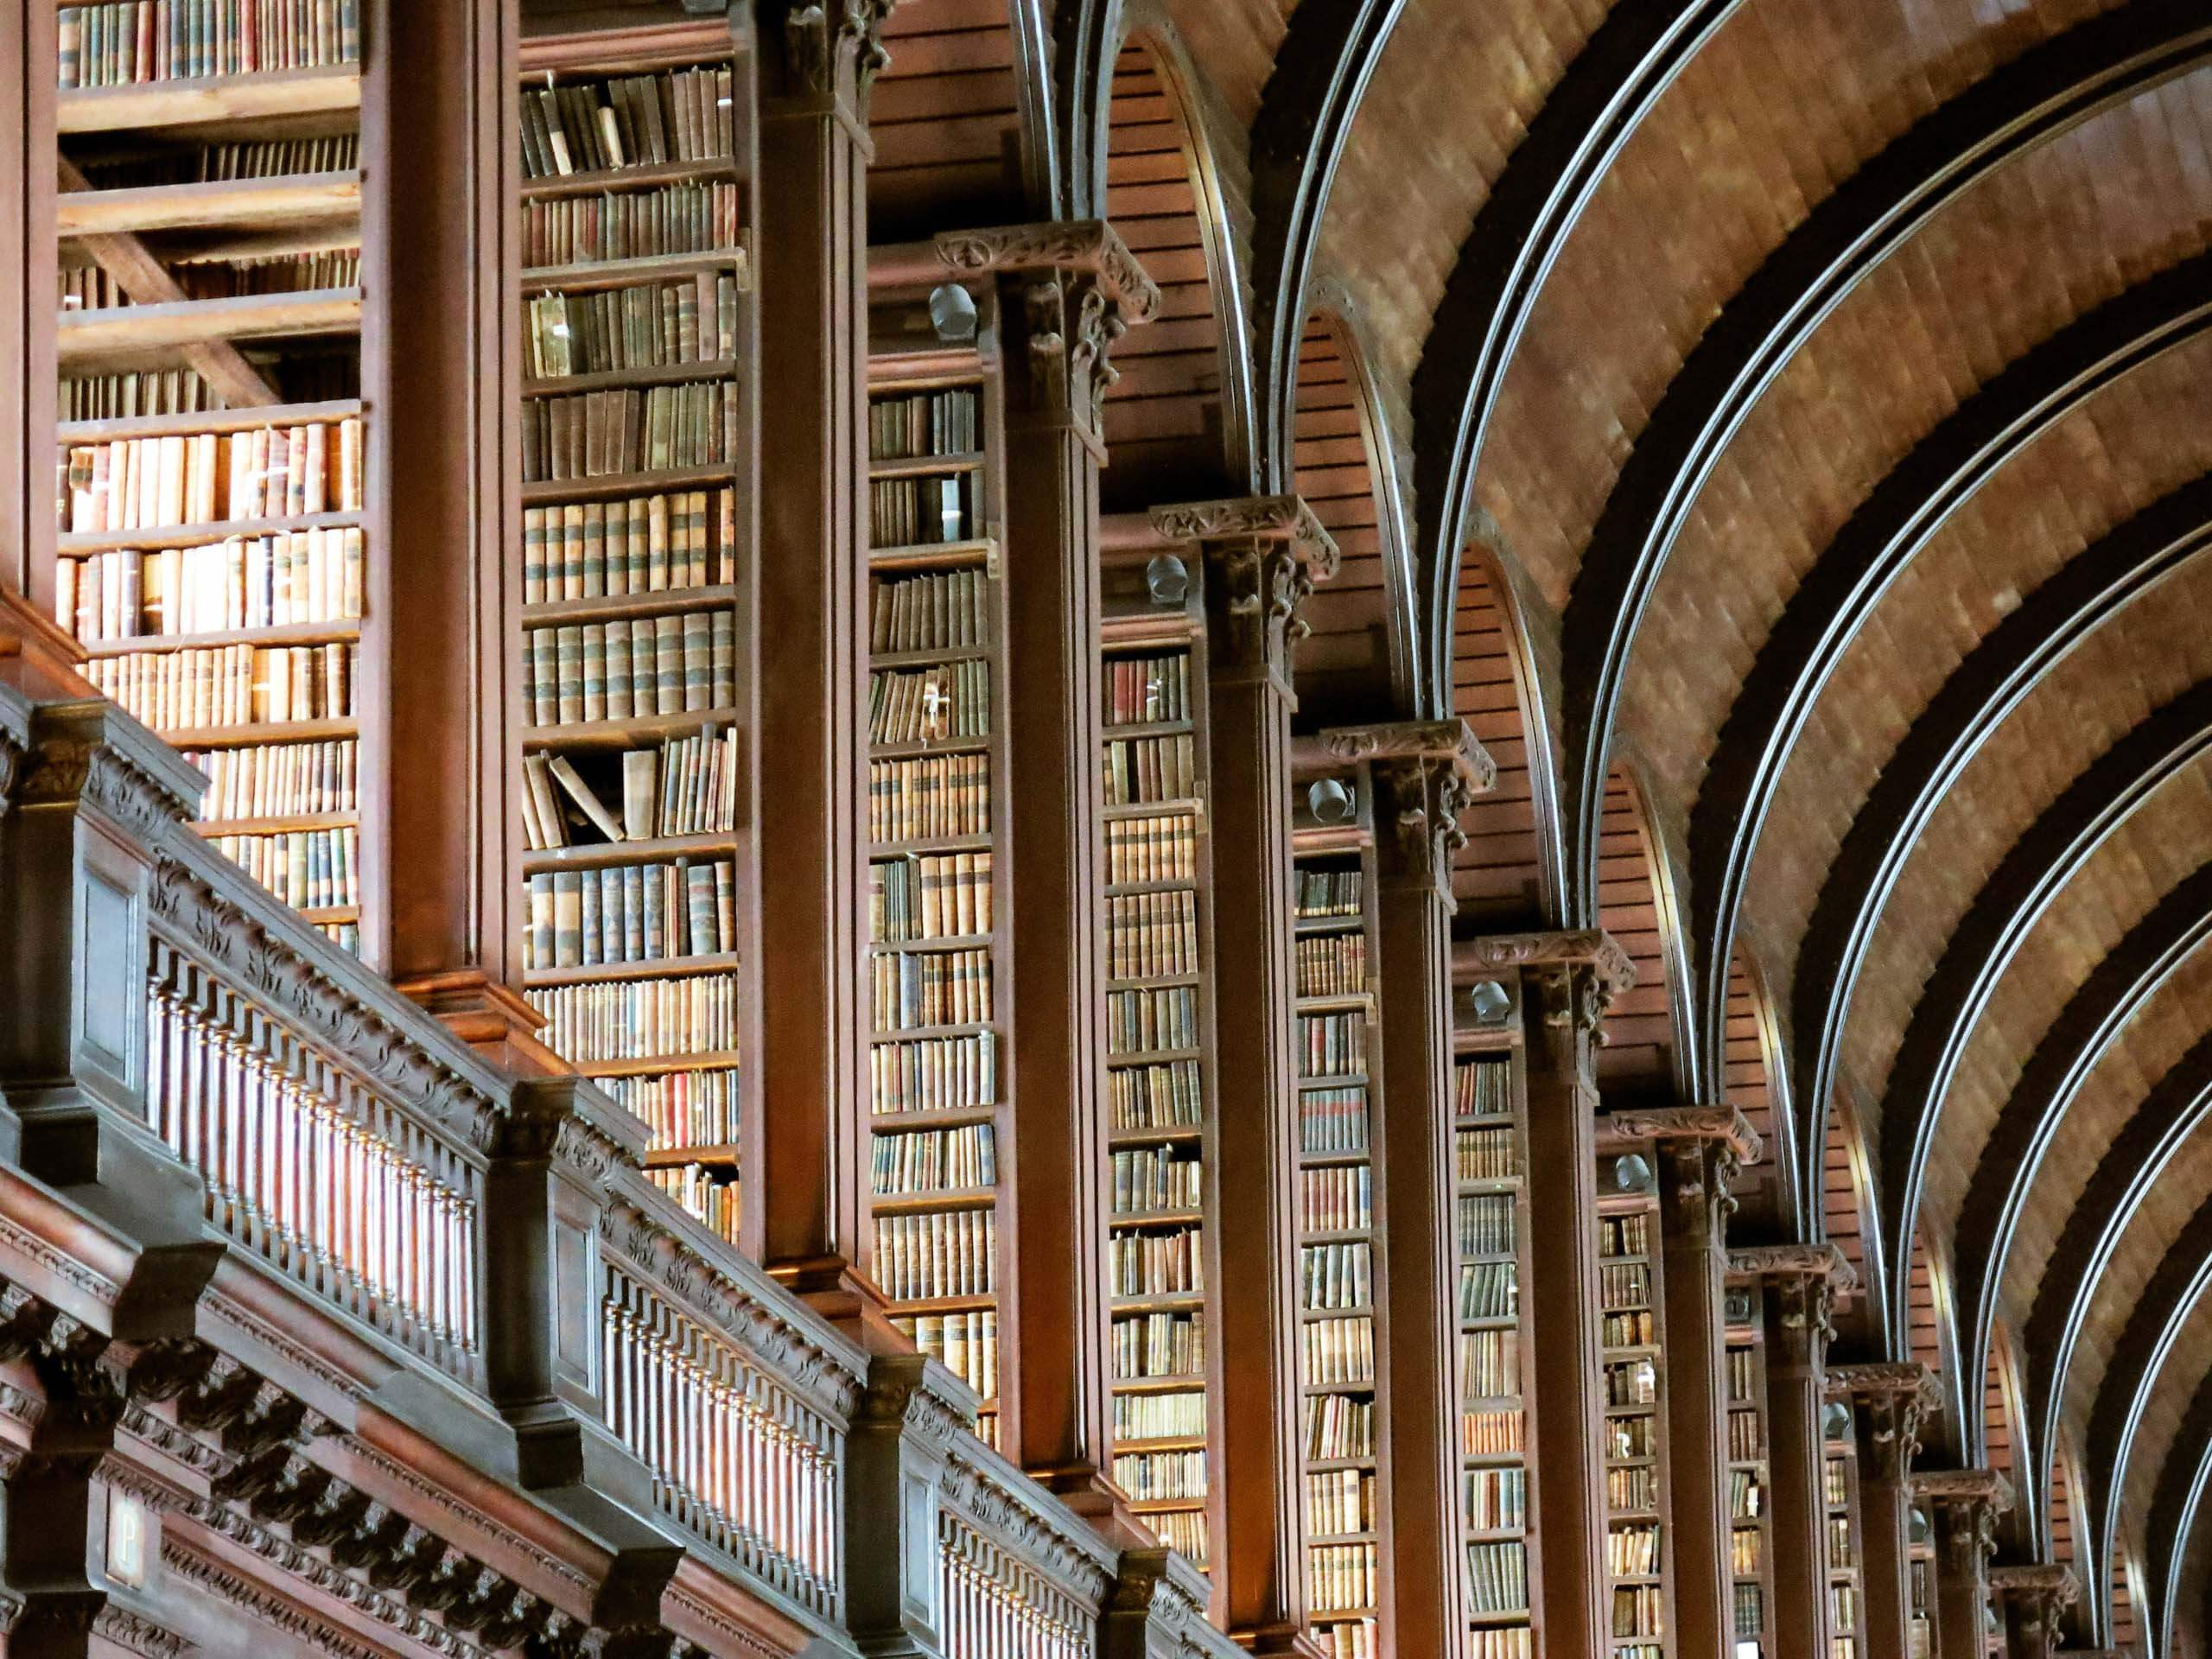 The Long Room Of The Old Library At Trinity College, Dublin, Ireland. Photo by Jonathan Singer on Unsplash